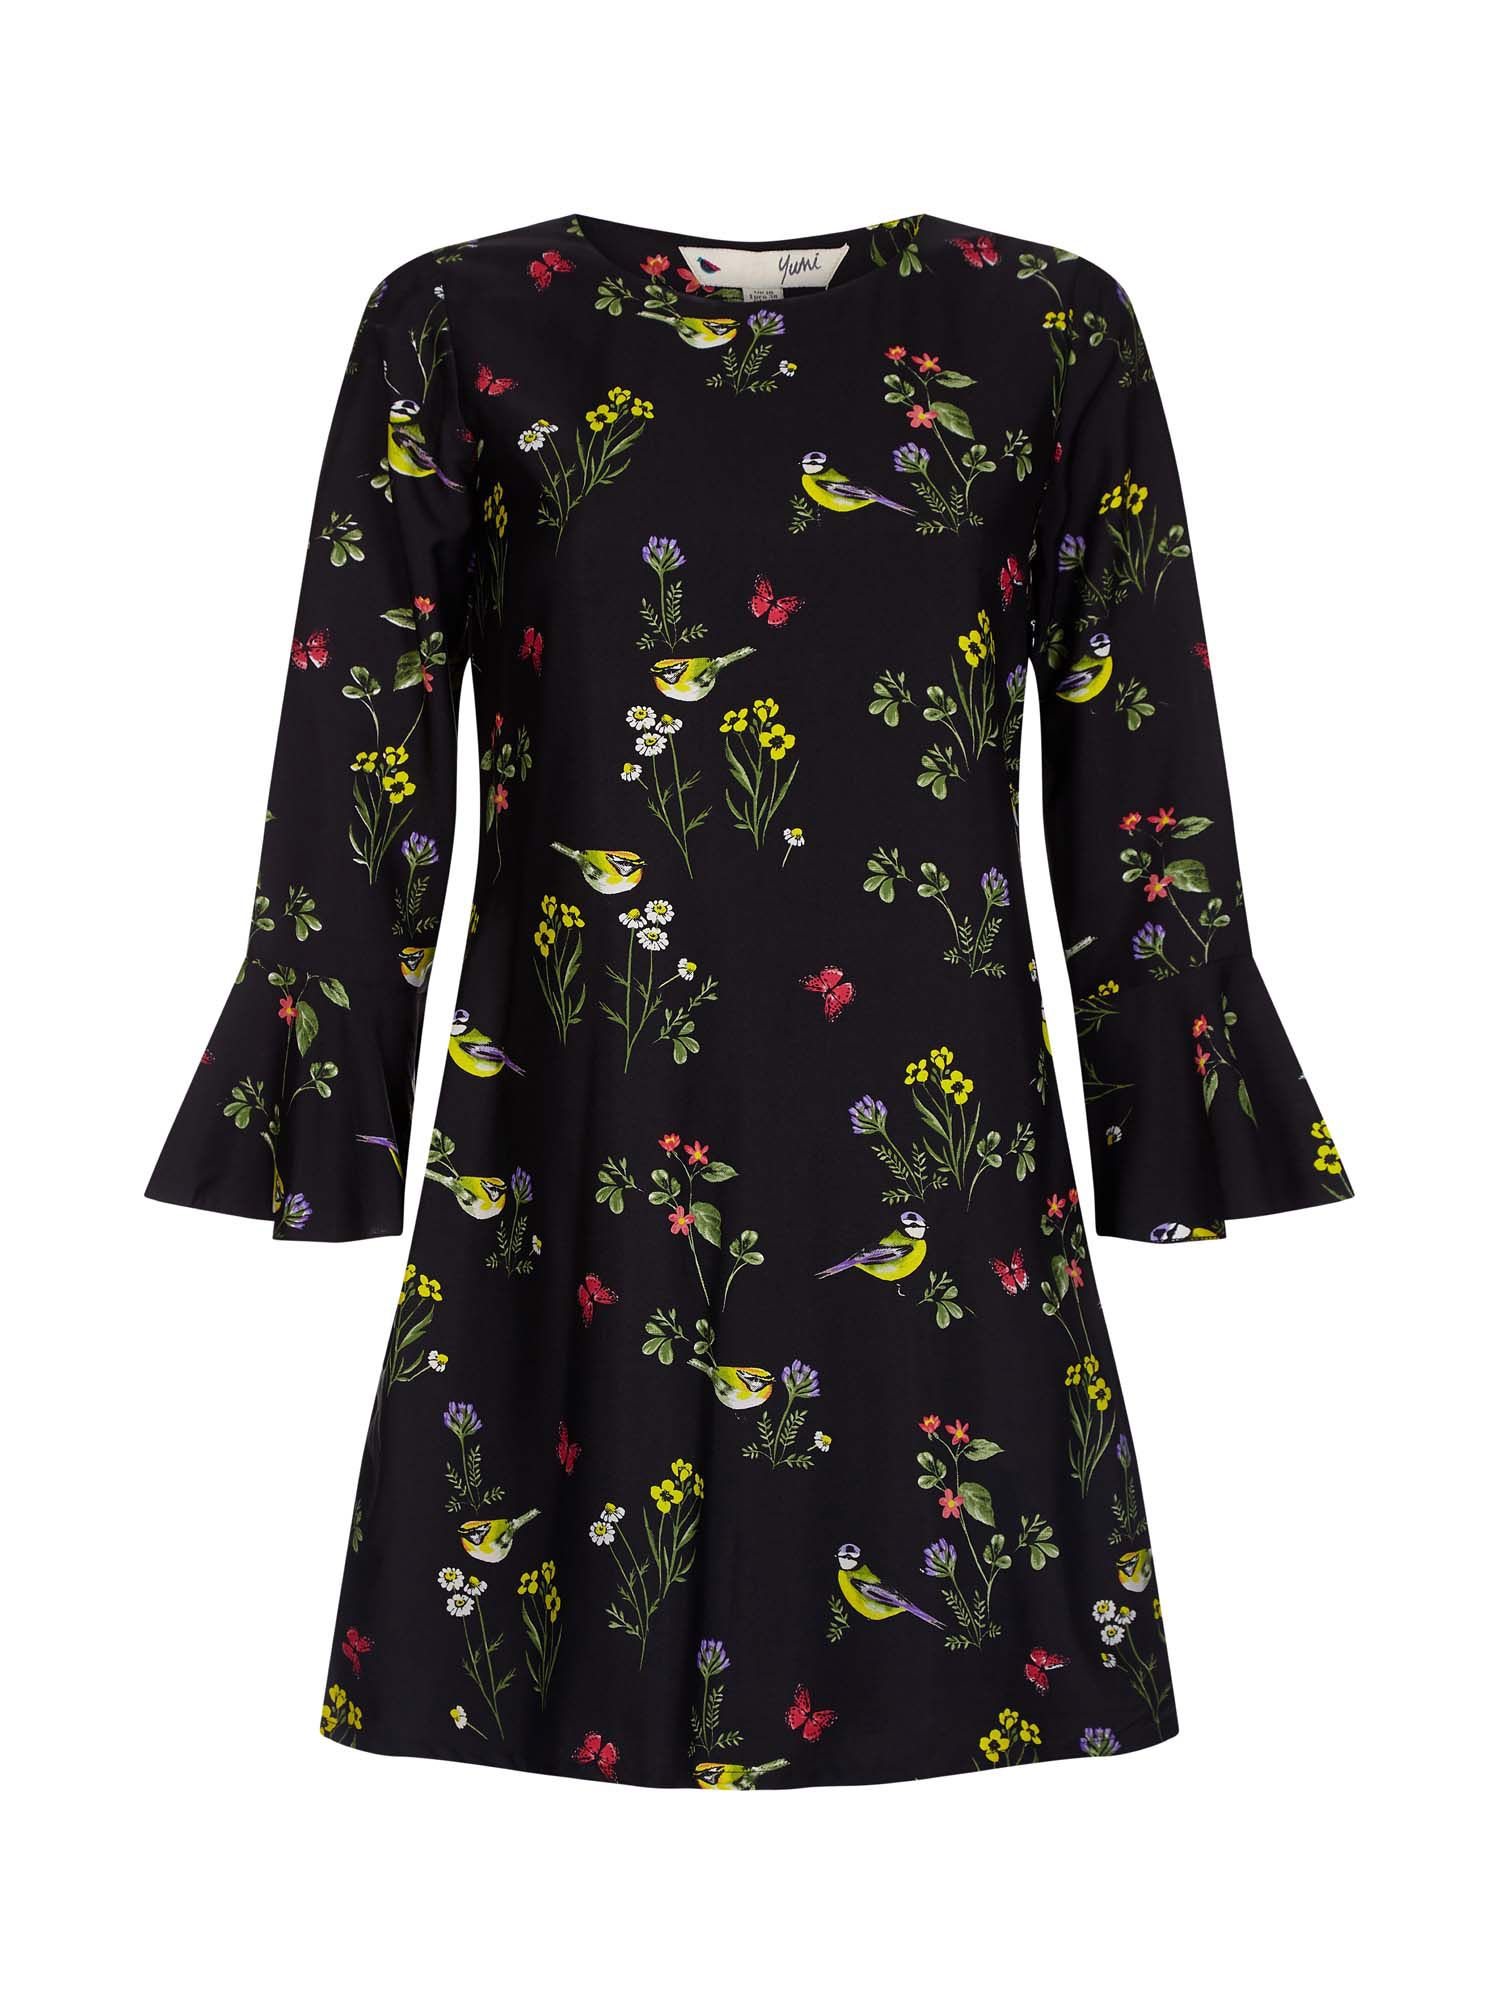 Photo of Yumi garden bird patterned shift dress- black